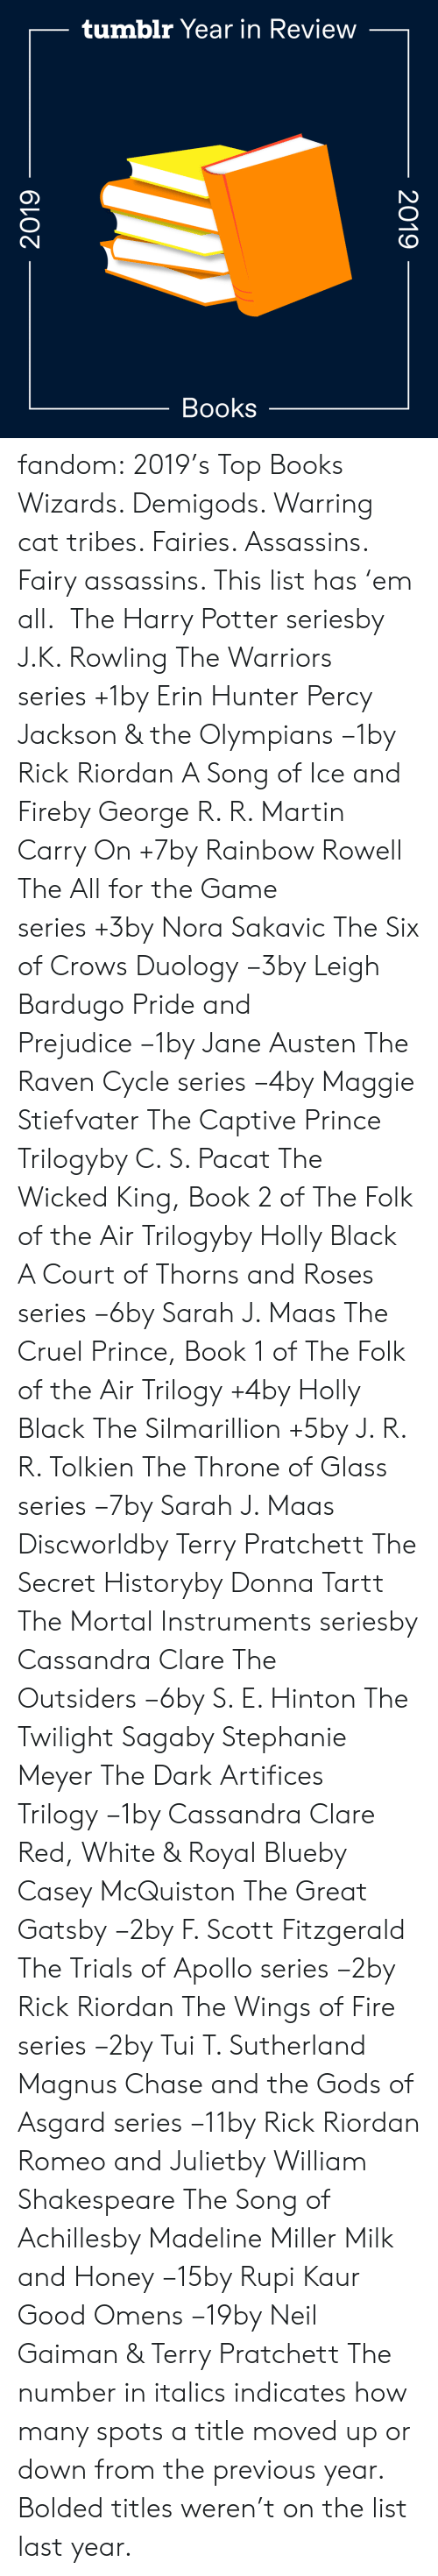 Previous: tumblr Year in Review  Books  2019  2019 fandom:  2019's Top Books  Wizards. Demigods. Warring cat tribes. Fairies. Assassins. Fairy assassins. This list has 'em all.   The Harry Potter seriesby J.K. Rowling  The Warriors series +1by Erin Hunter  Percy Jackson & the Olympians −1by Rick Riordan  A Song of Ice and Fireby George R. R. Martin  Carry On +7by Rainbow Rowell  The All for the Game series +3by Nora Sakavic  The Six of Crows Duology −3by Leigh Bardugo  Pride and Prejudice −1by Jane Austen  The Raven Cycle series −4by Maggie Stiefvater  The Captive Prince Trilogyby C. S. Pacat  The Wicked King, Book 2 of The Folk of the Air Trilogyby Holly Black  A Court of Thorns and Roses series −6by Sarah J. Maas  The Cruel Prince, Book 1 of The Folk of the Air Trilogy +4by Holly Black  The Silmarillion +5by J. R. R. Tolkien  The Throne of Glass series −7by Sarah J. Maas  Discworldby Terry Pratchett  The Secret Historyby Donna Tartt  The Mortal Instruments seriesby Cassandra Clare  The Outsiders −6by S. E. Hinton  The Twilight Sagaby Stephanie Meyer  The Dark Artifices Trilogy −1by Cassandra Clare  Red, White & Royal Blueby Casey McQuiston  The Great Gatsby −2by F. Scott Fitzgerald  The Trials of Apollo series −2by Rick Riordan  The Wings of Fire series −2by Tui T. Sutherland  Magnus Chase and the Gods of Asgard series −11by Rick Riordan  Romeo and Julietby William Shakespeare  The Song of Achillesby Madeline Miller  Milk and Honey −15by Rupi Kaur  Good Omens −19by Neil Gaiman & Terry Pratchett The number in italics indicates how many spots a title moved up or down from the previous year. Bolded titles weren't on the list last year.